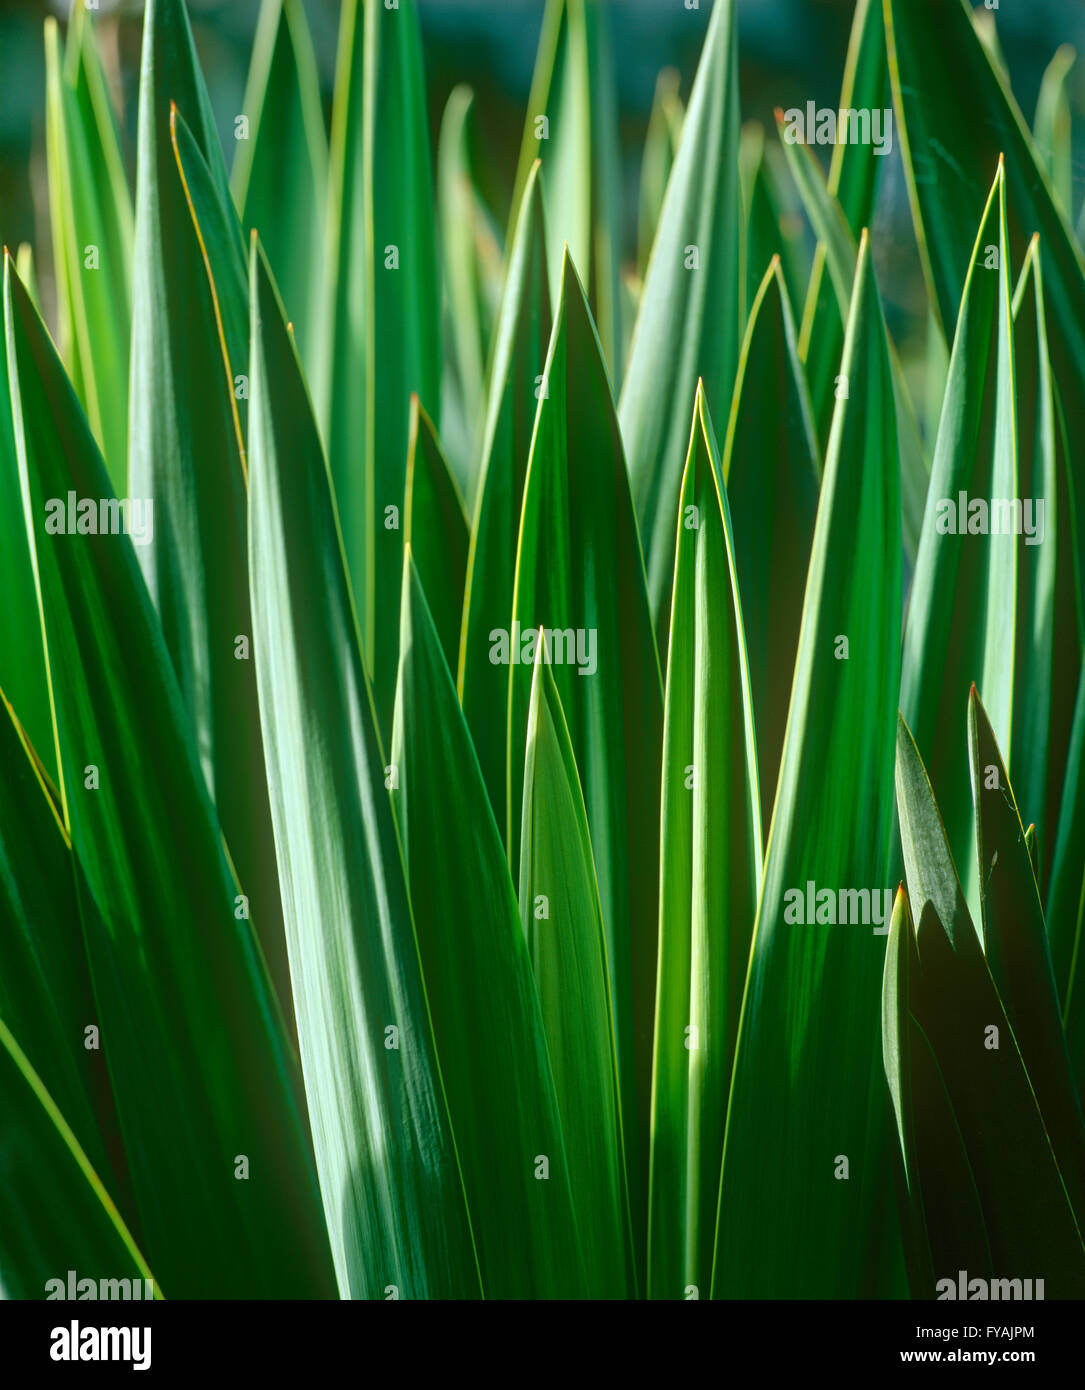 Close-up of blades of grass, outside. - Stock Image